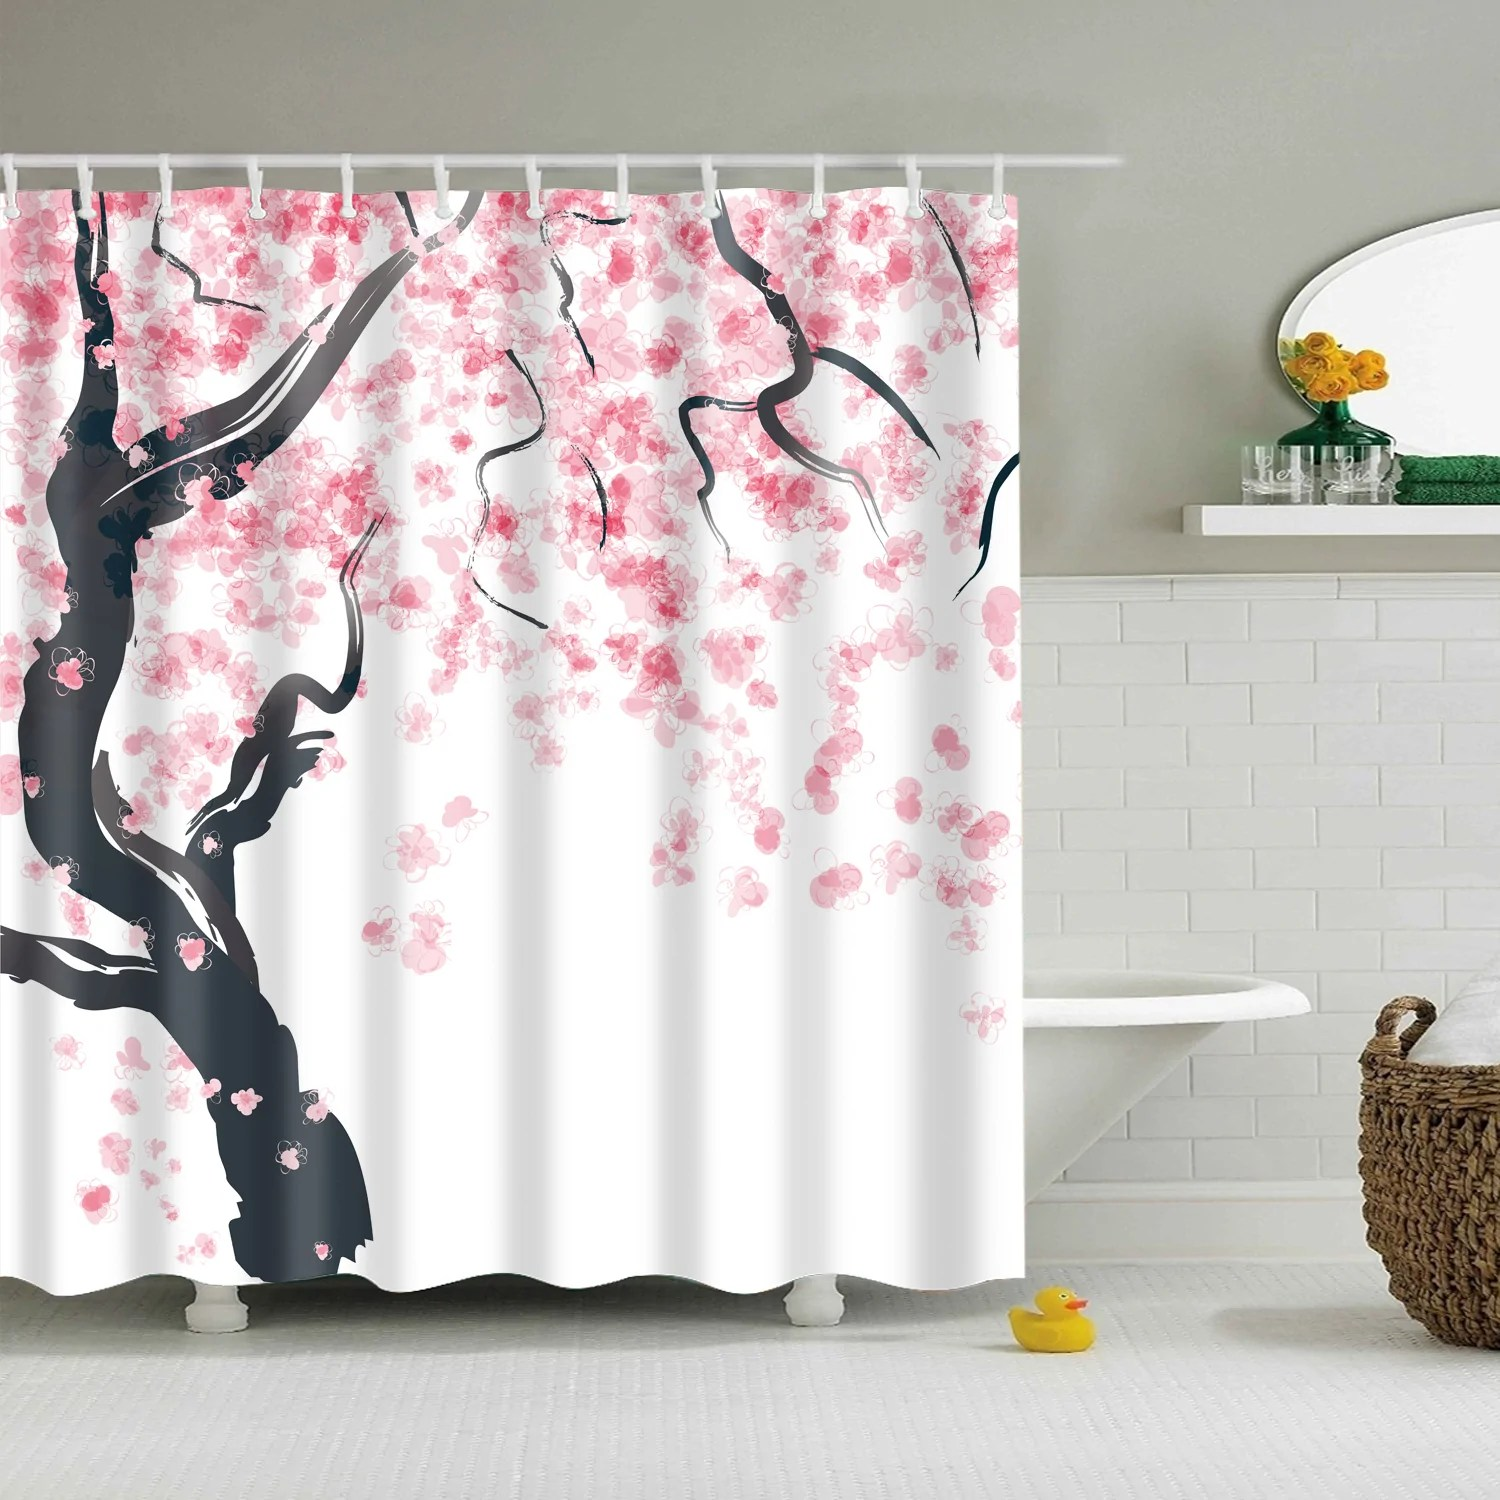 Pink Cherry Blossom Japanese Style Shower Curtain Gojeek